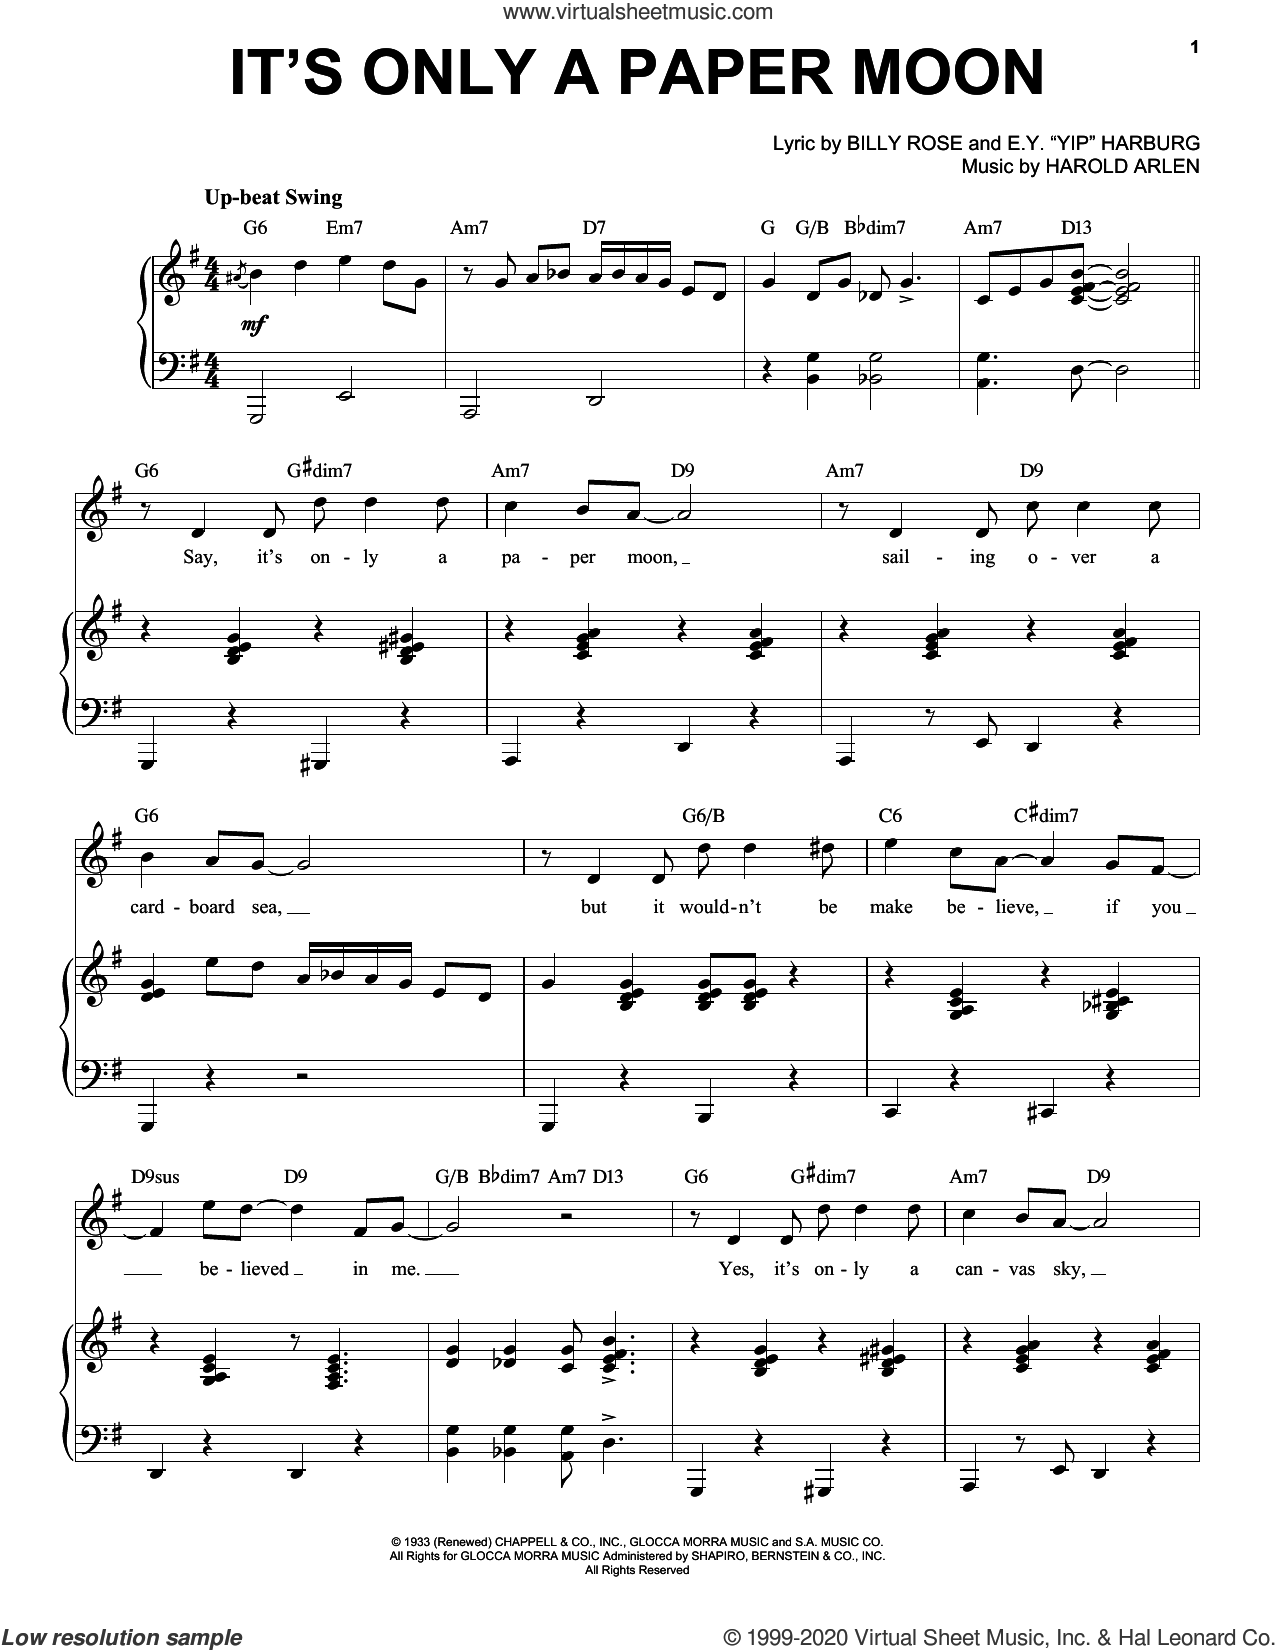 It's Only A Paper Moon [Jazz version] (arr. Brent Edstrom) sheet music for voice and piano (High Voice) by Harold Arlen, Brent Edstrom, Billy Rose, Billy Rose, E.Y. 'Yip' Harburg and Harold Arlen and E.Y. Harburg, intermediate skill level